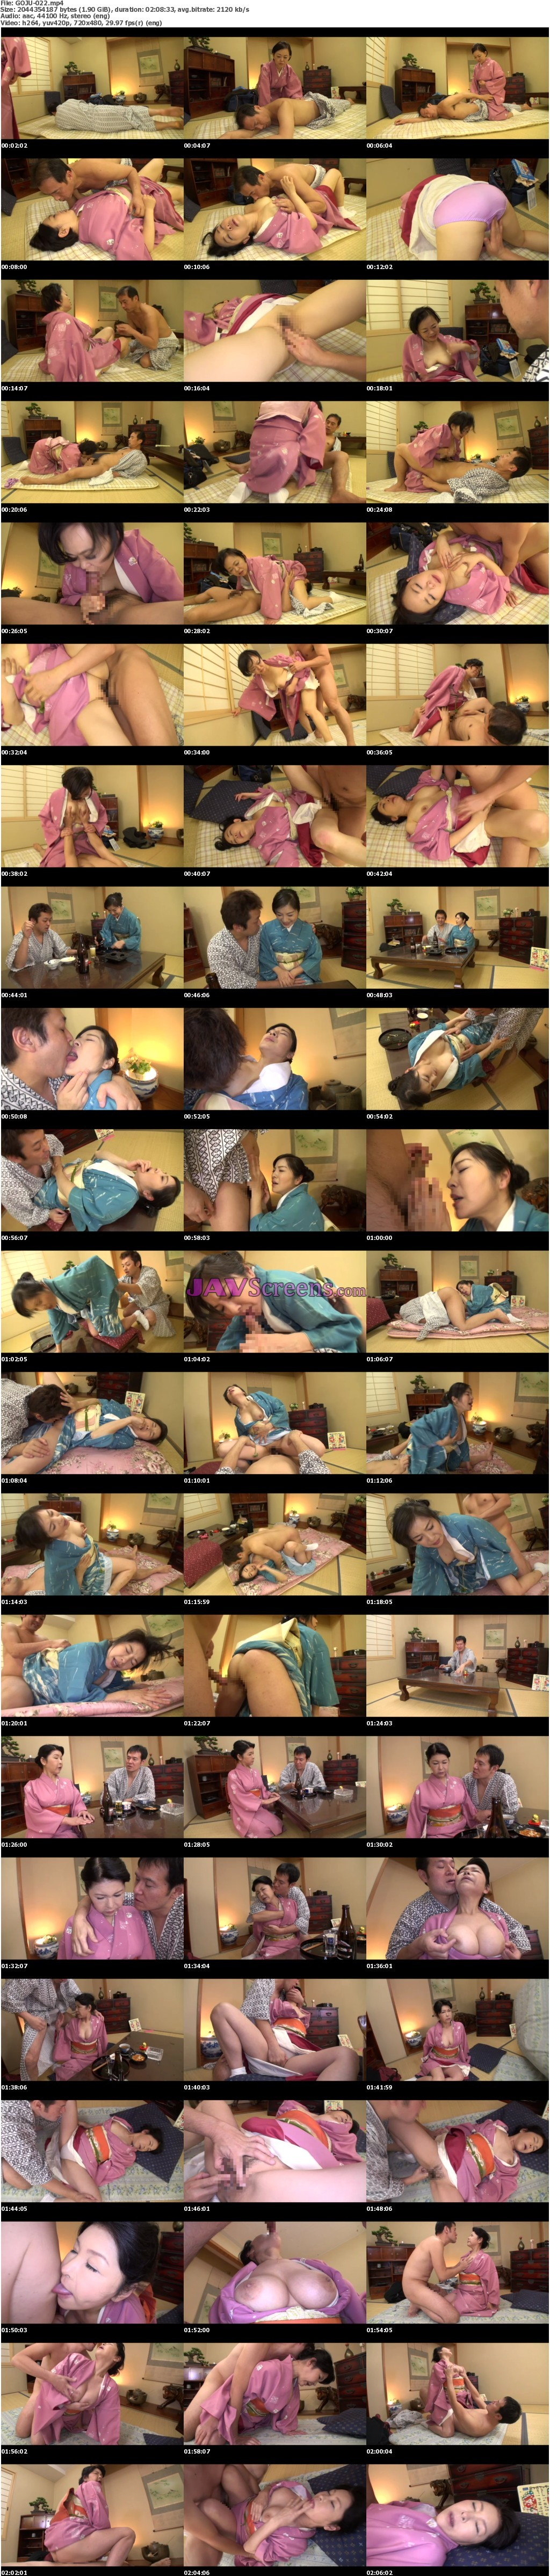 GOJU-022.jpg - JAV Screenshot